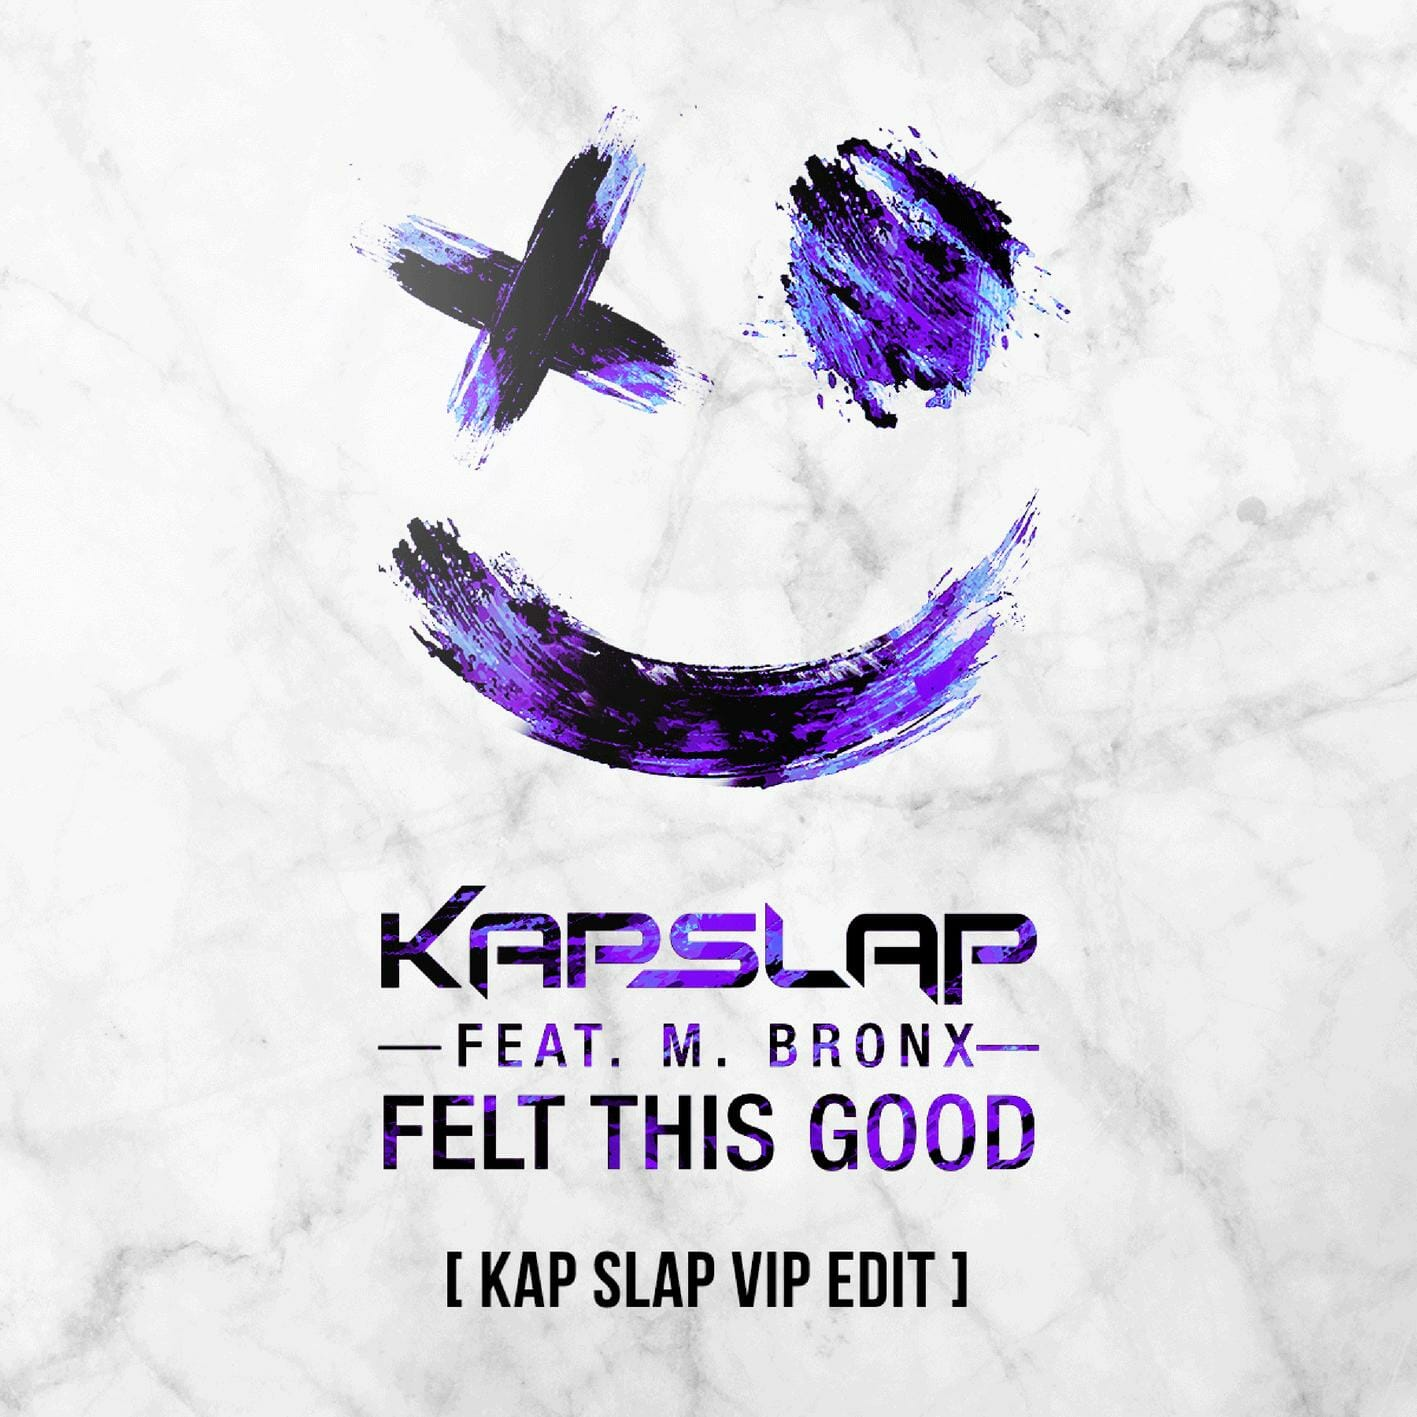 Kap Slap shares new video for his VIP edit of 'Felt This Good'Kap Slap Vip Edi Felt This Good